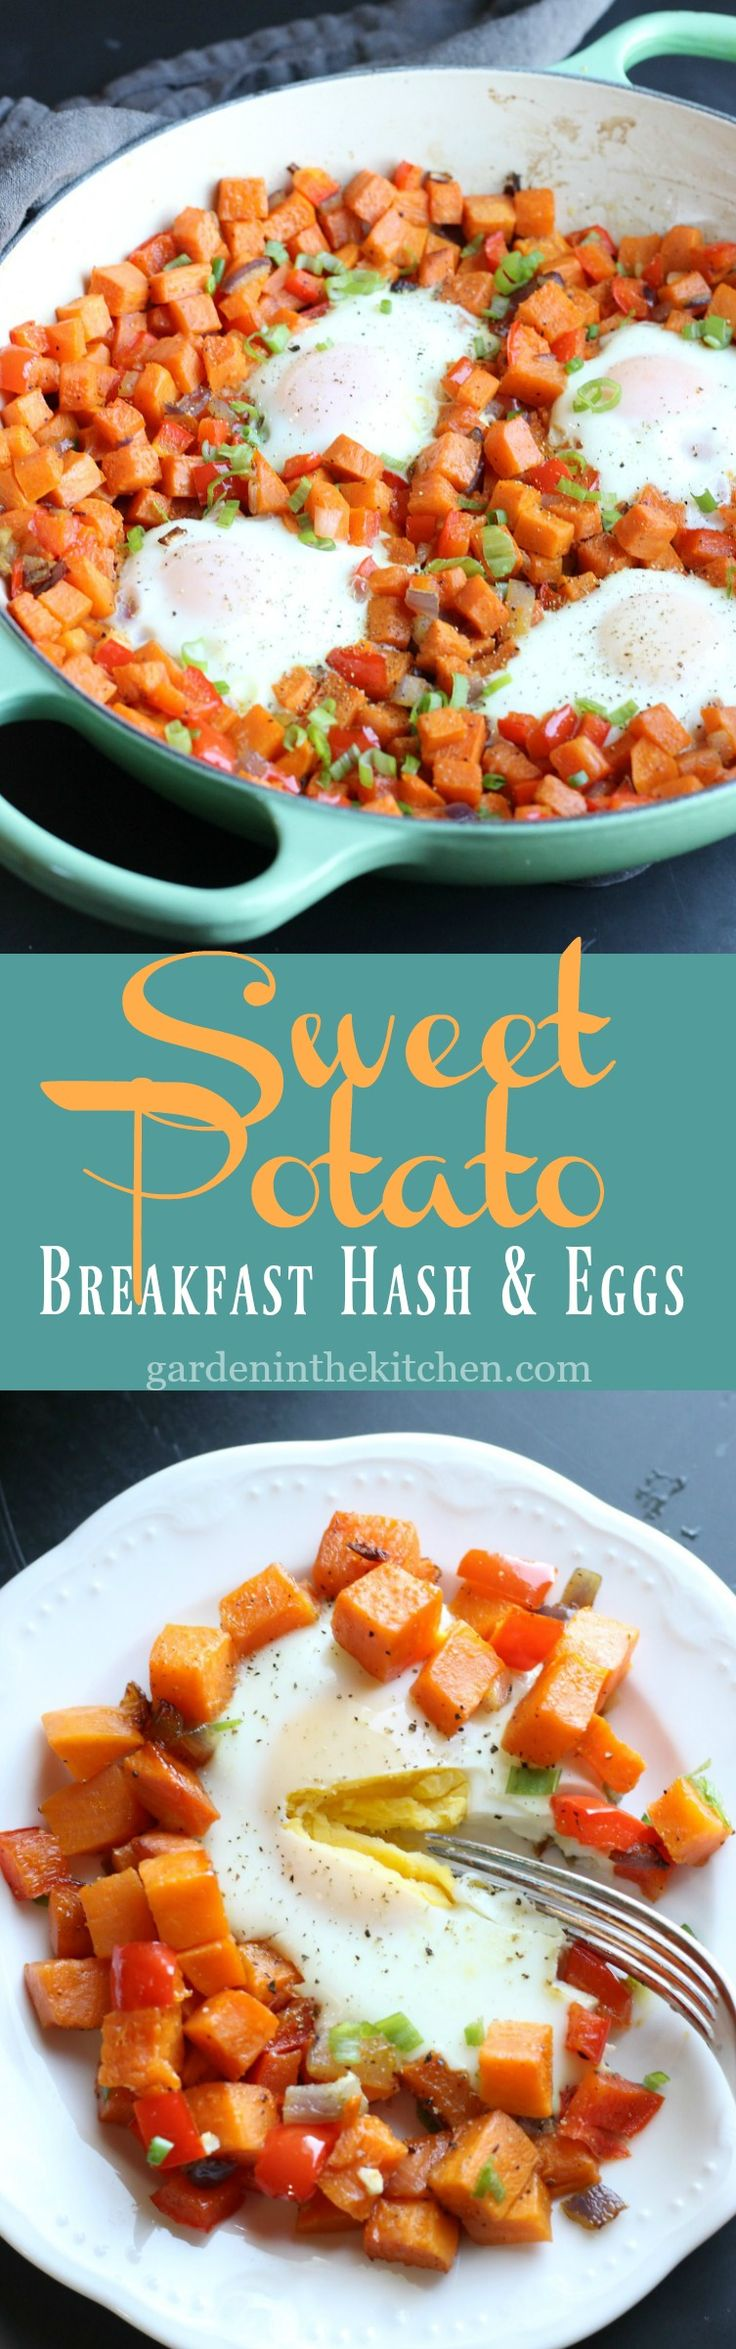 Sweet Potato Breakfast Hash & Eggs